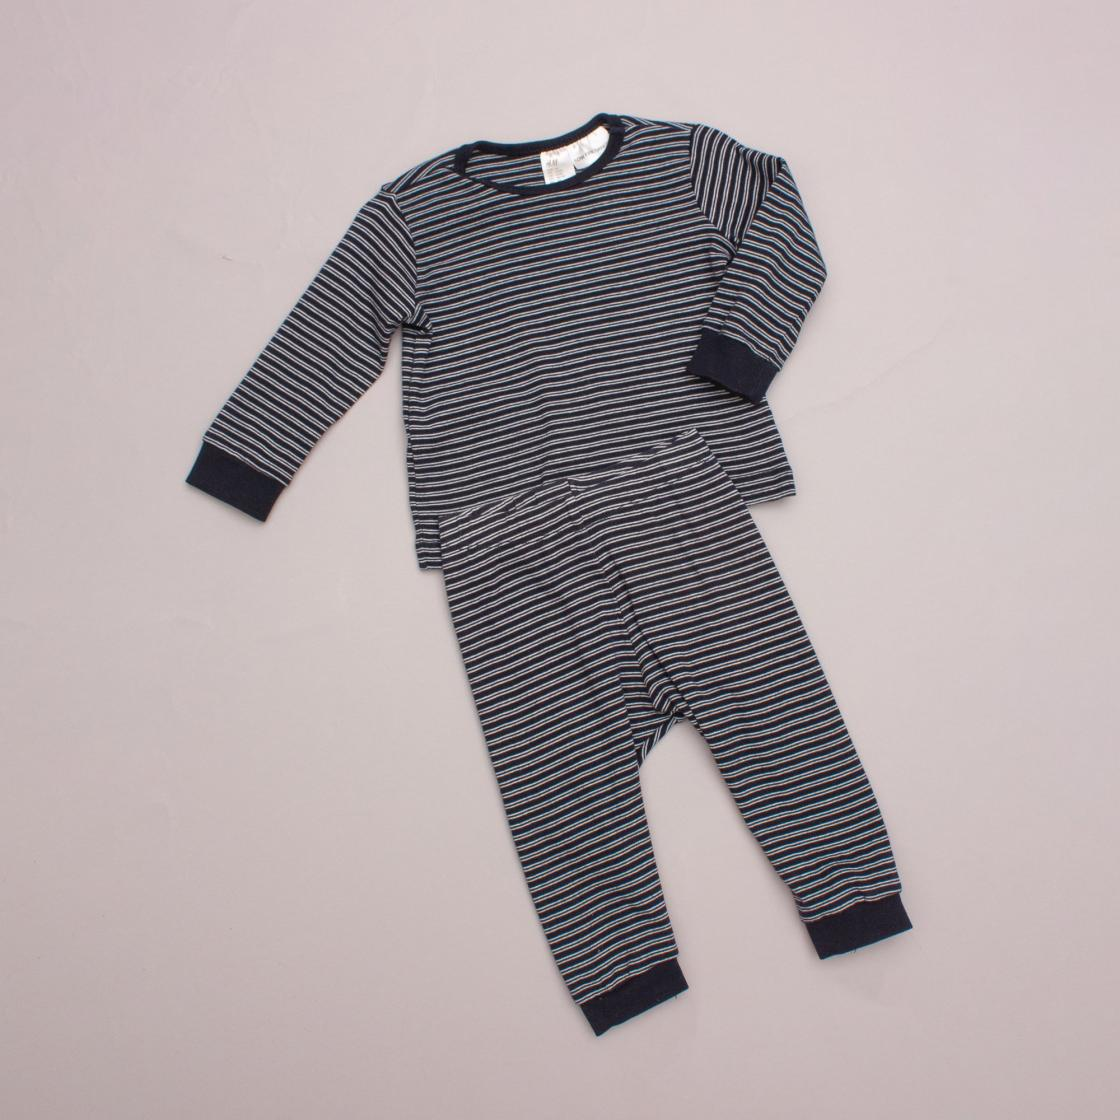 H&M Striped Pajamas